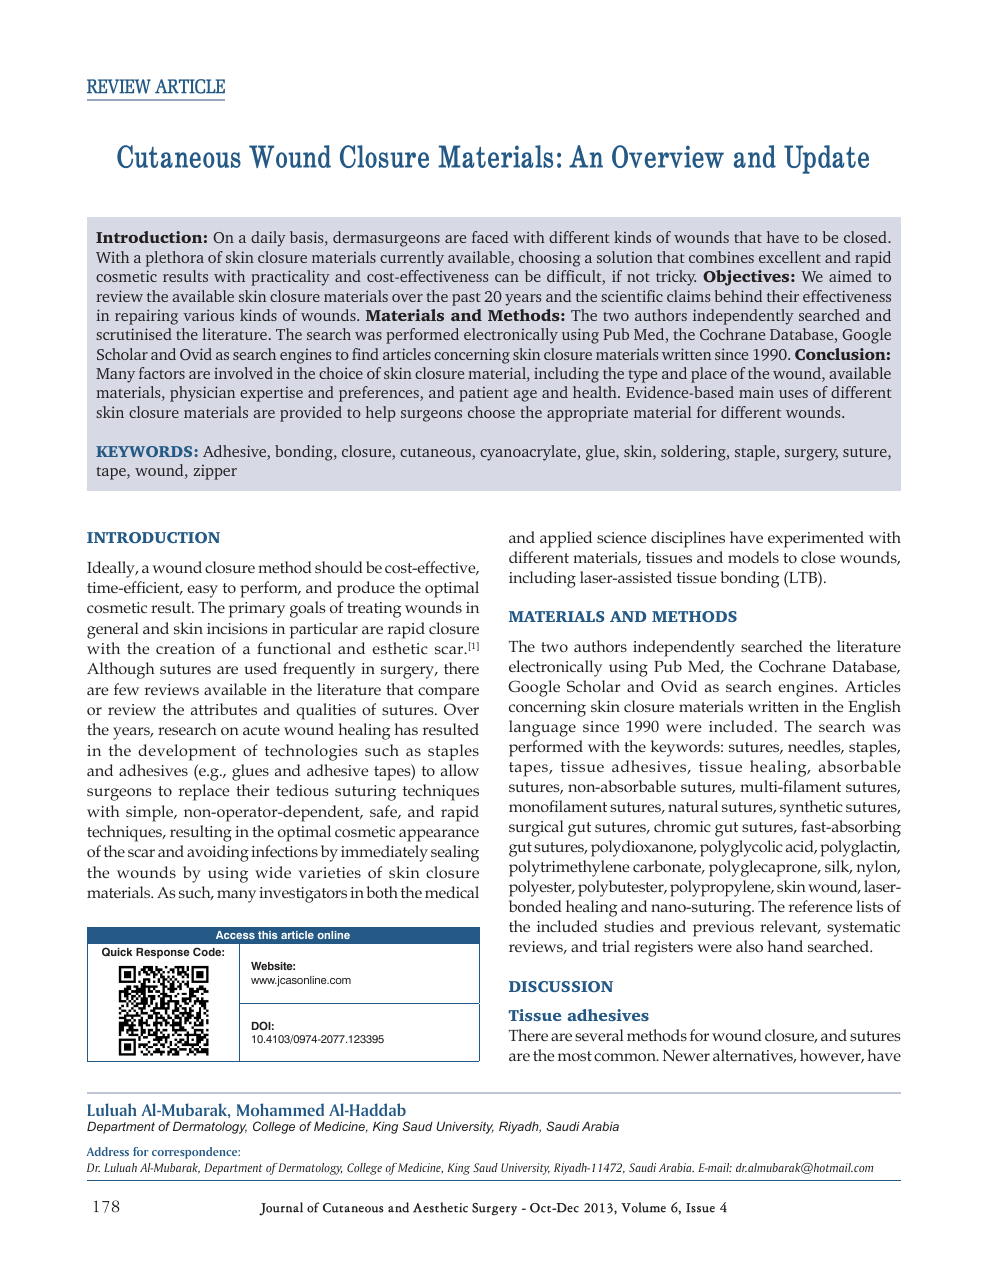 Cutaneous wound closure materials: An overview and update